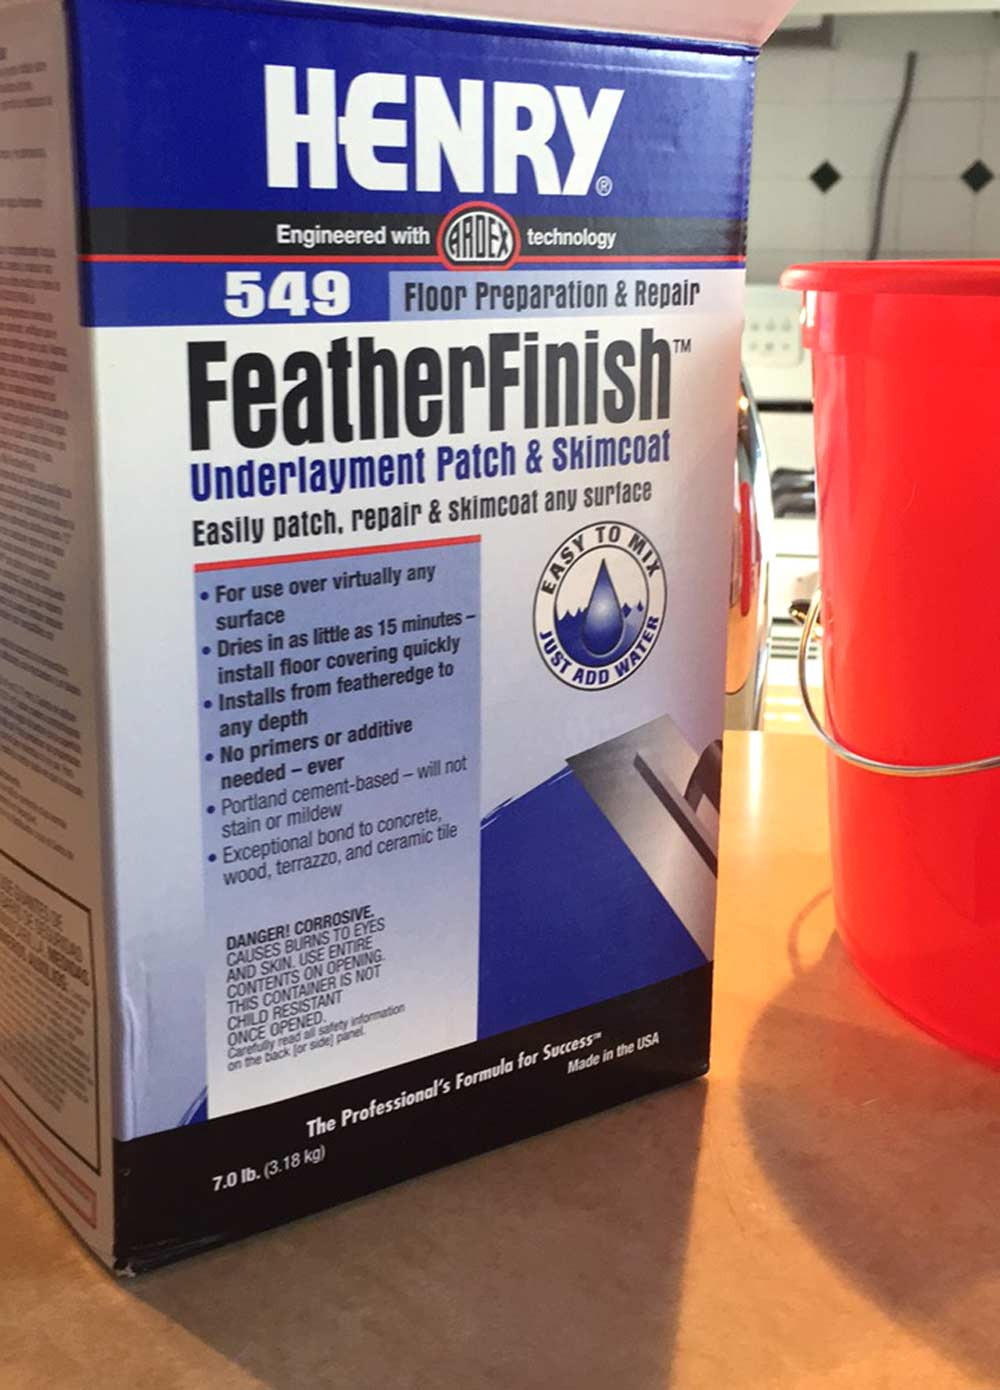 Using Henry FeatherFinish for DIY concrete counters over existing tile countertops